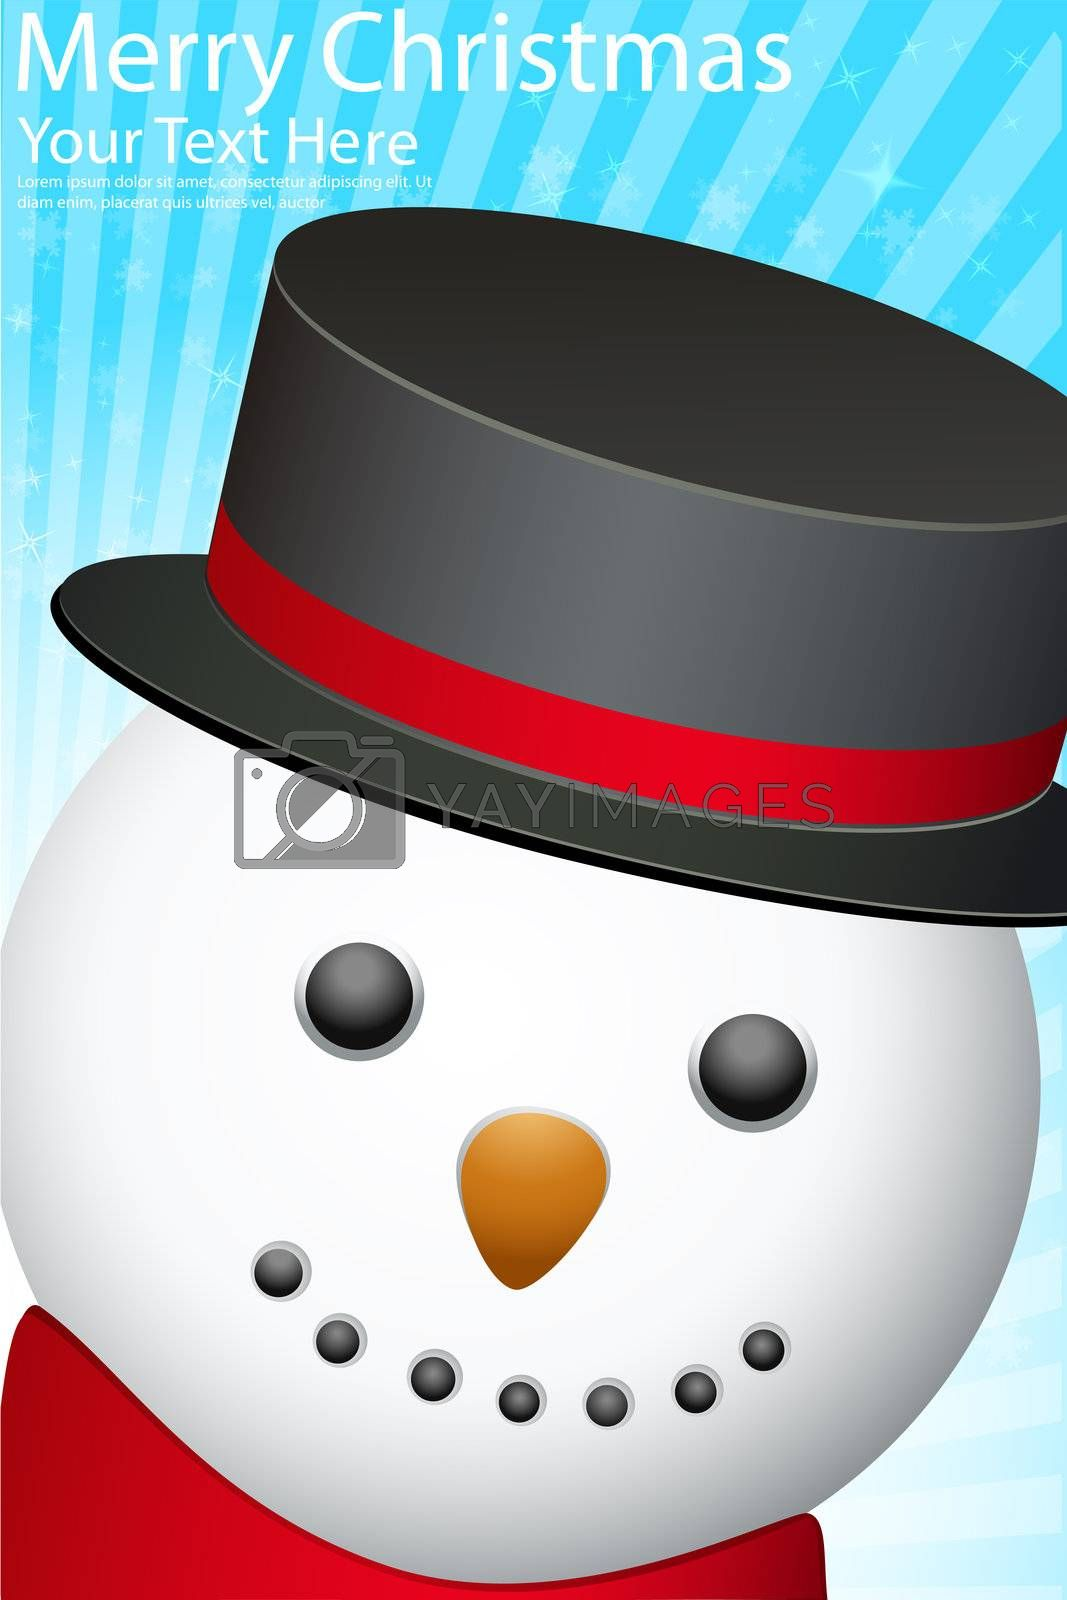 Royalty free image of snowman by get4net